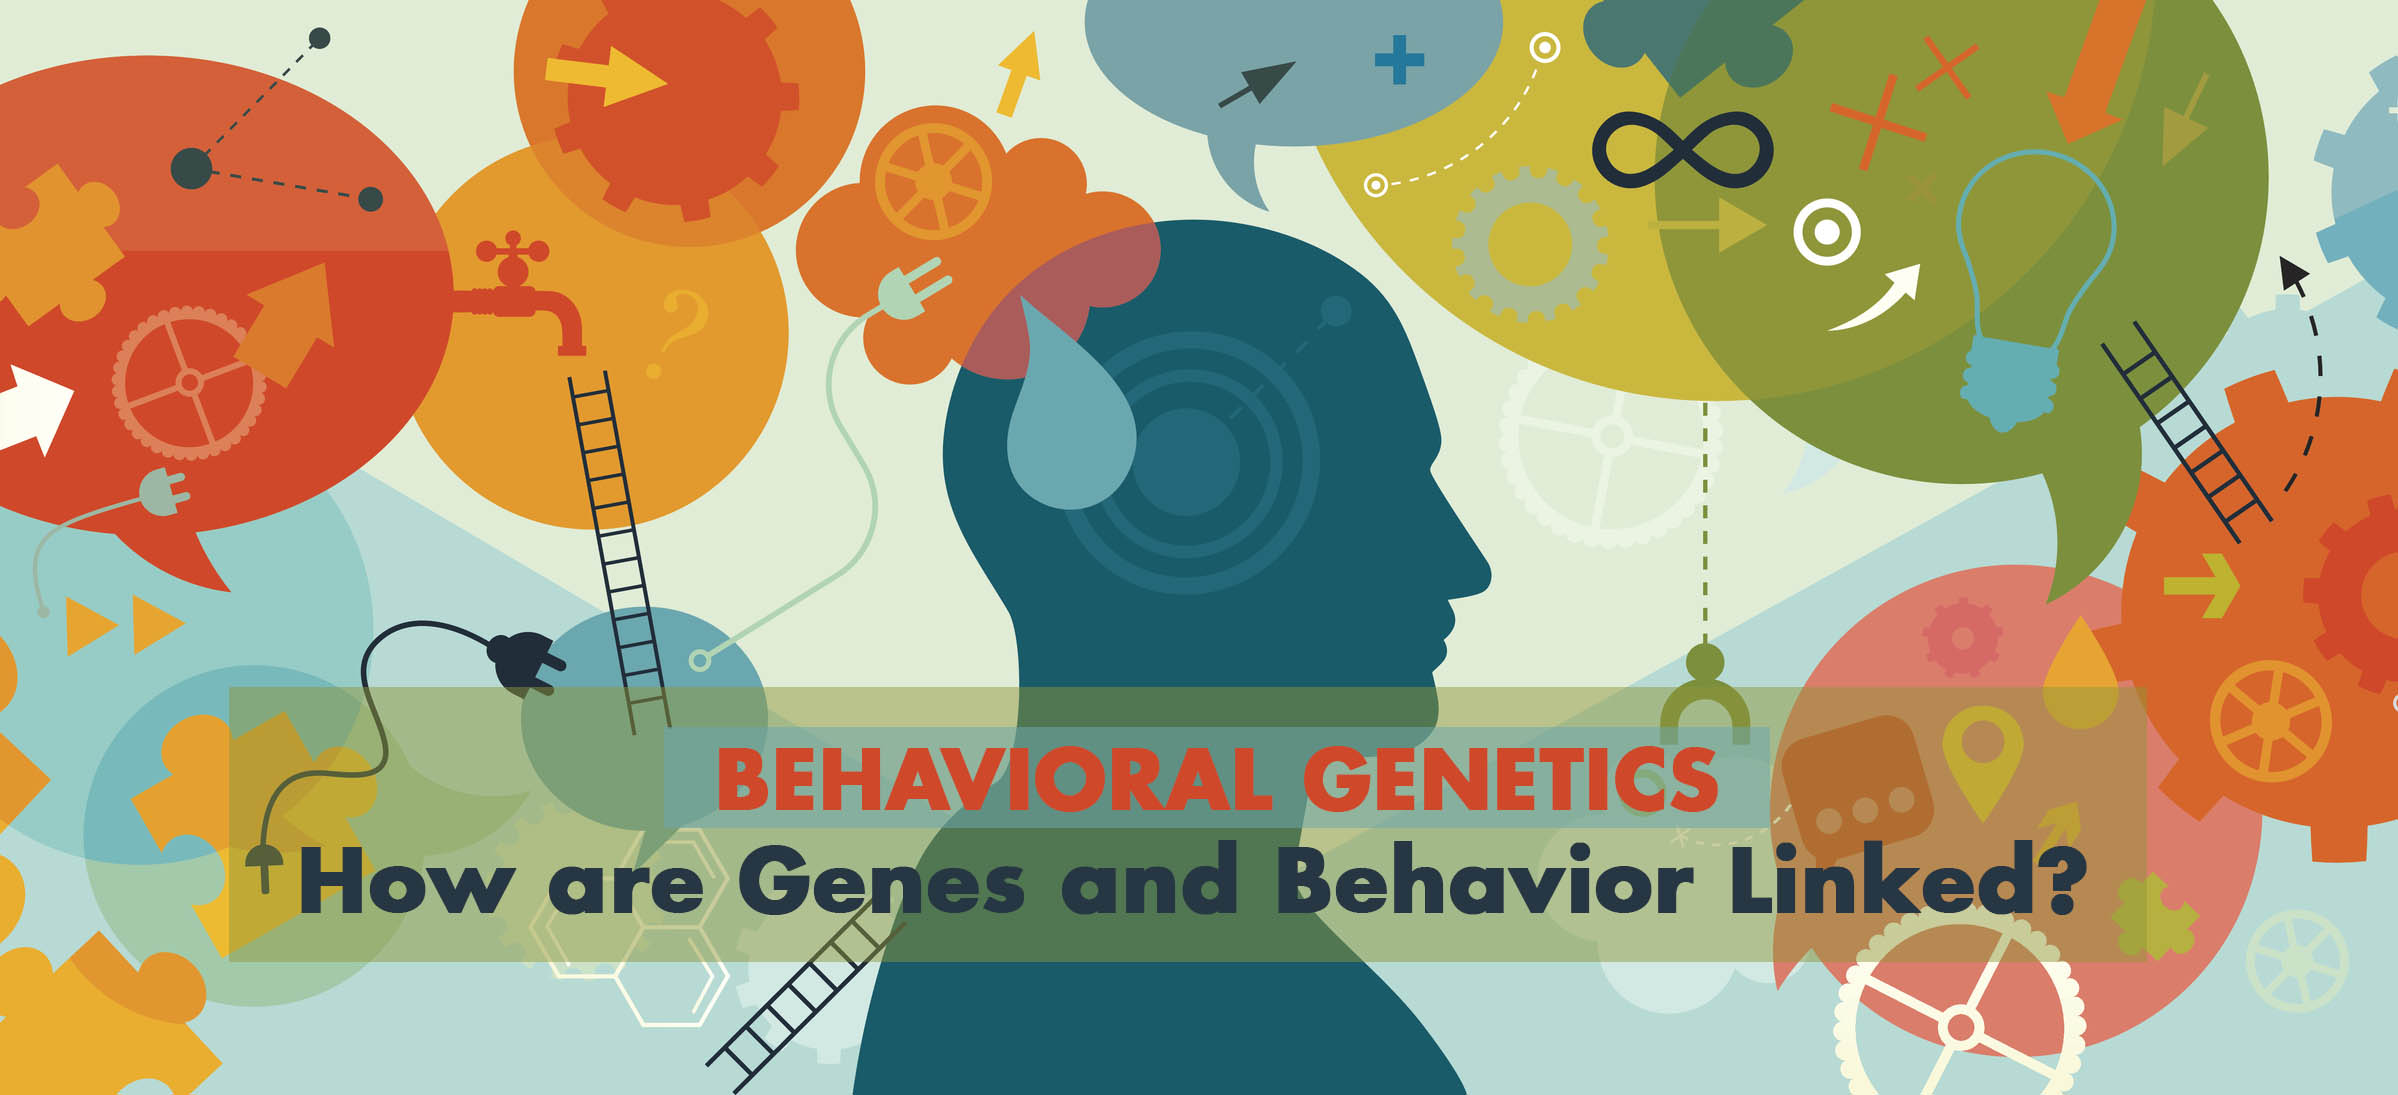 Behavioral Genetics - How are Genes and Behavior Linked?